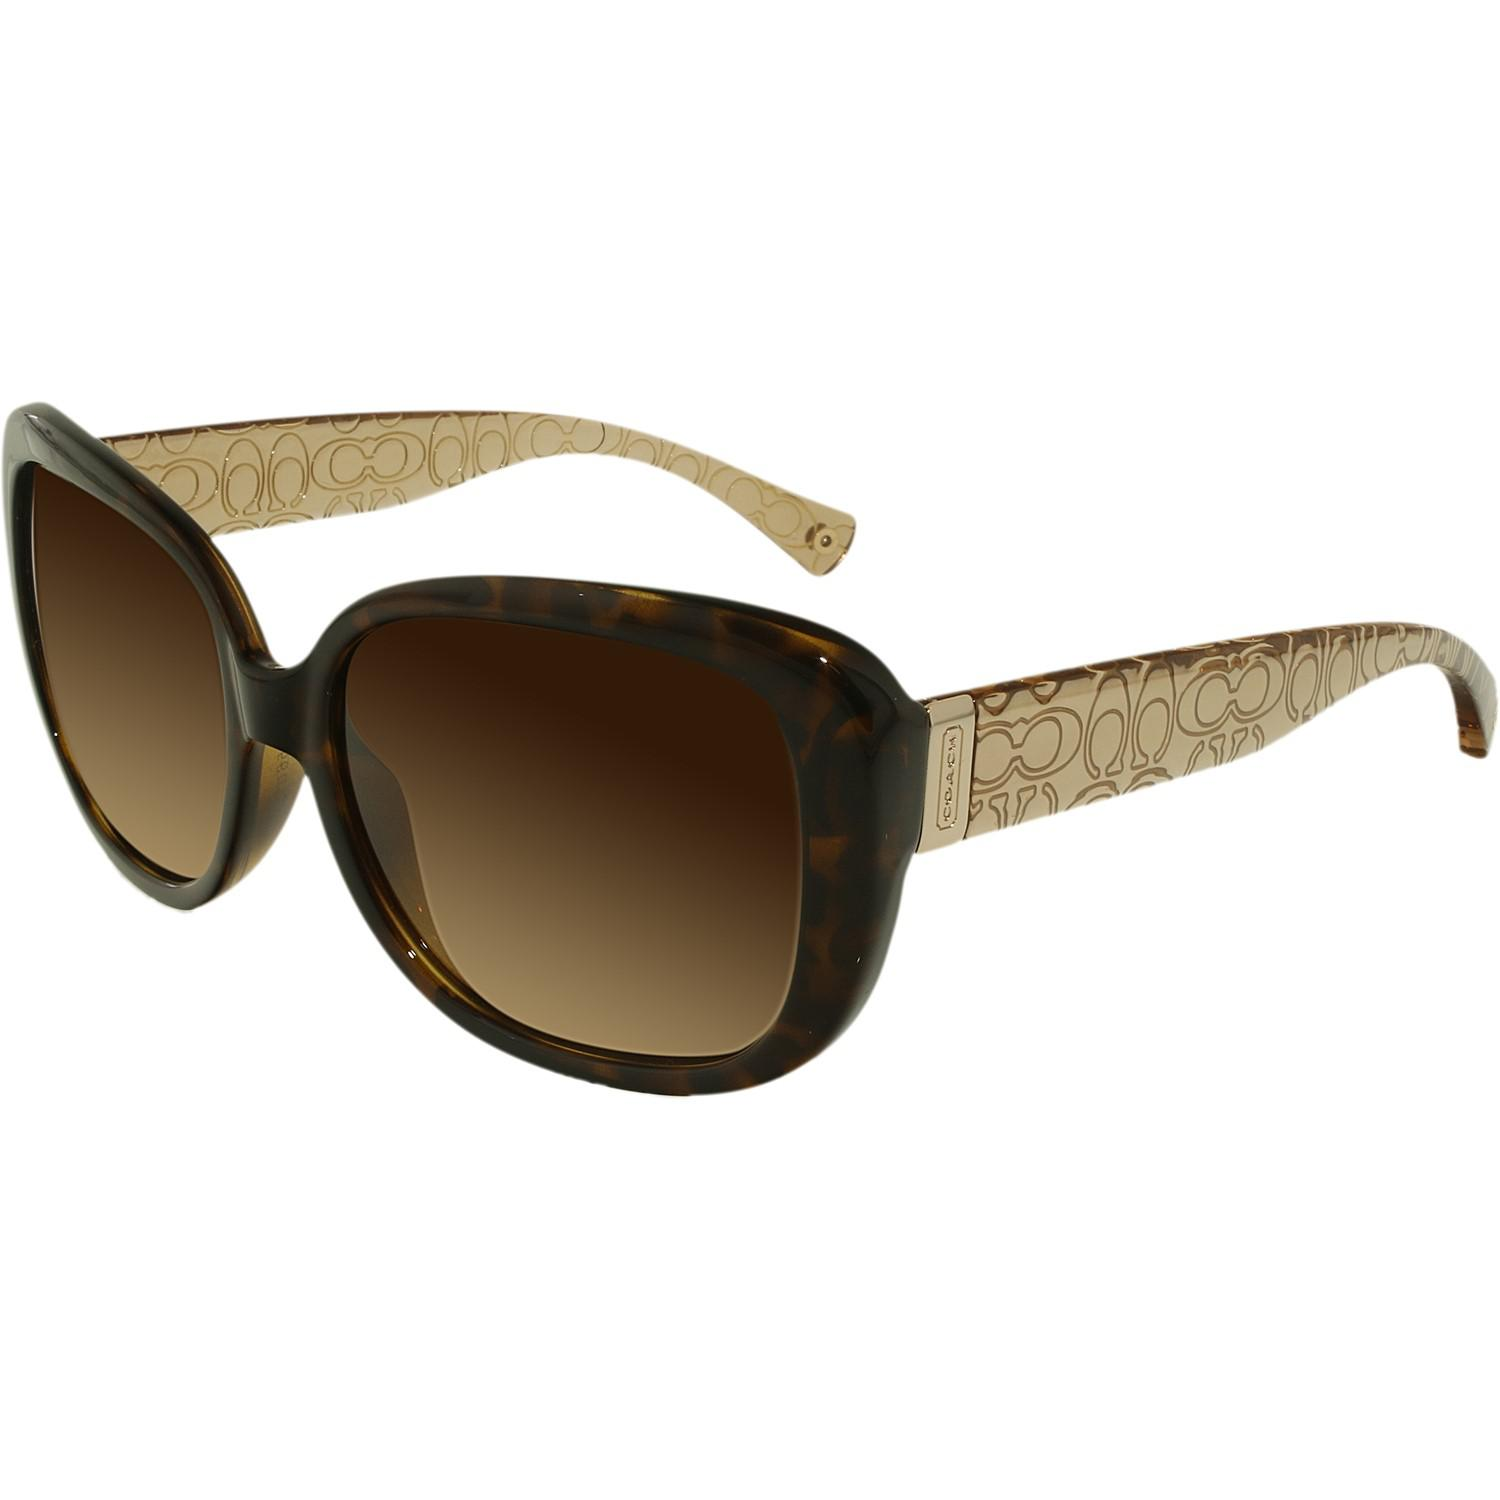 bafc2e4079052 ... coupon code for lyst coach gradient laurin hc8076 515213 56 butterfly  sunglasses b7468 f27d0 ...